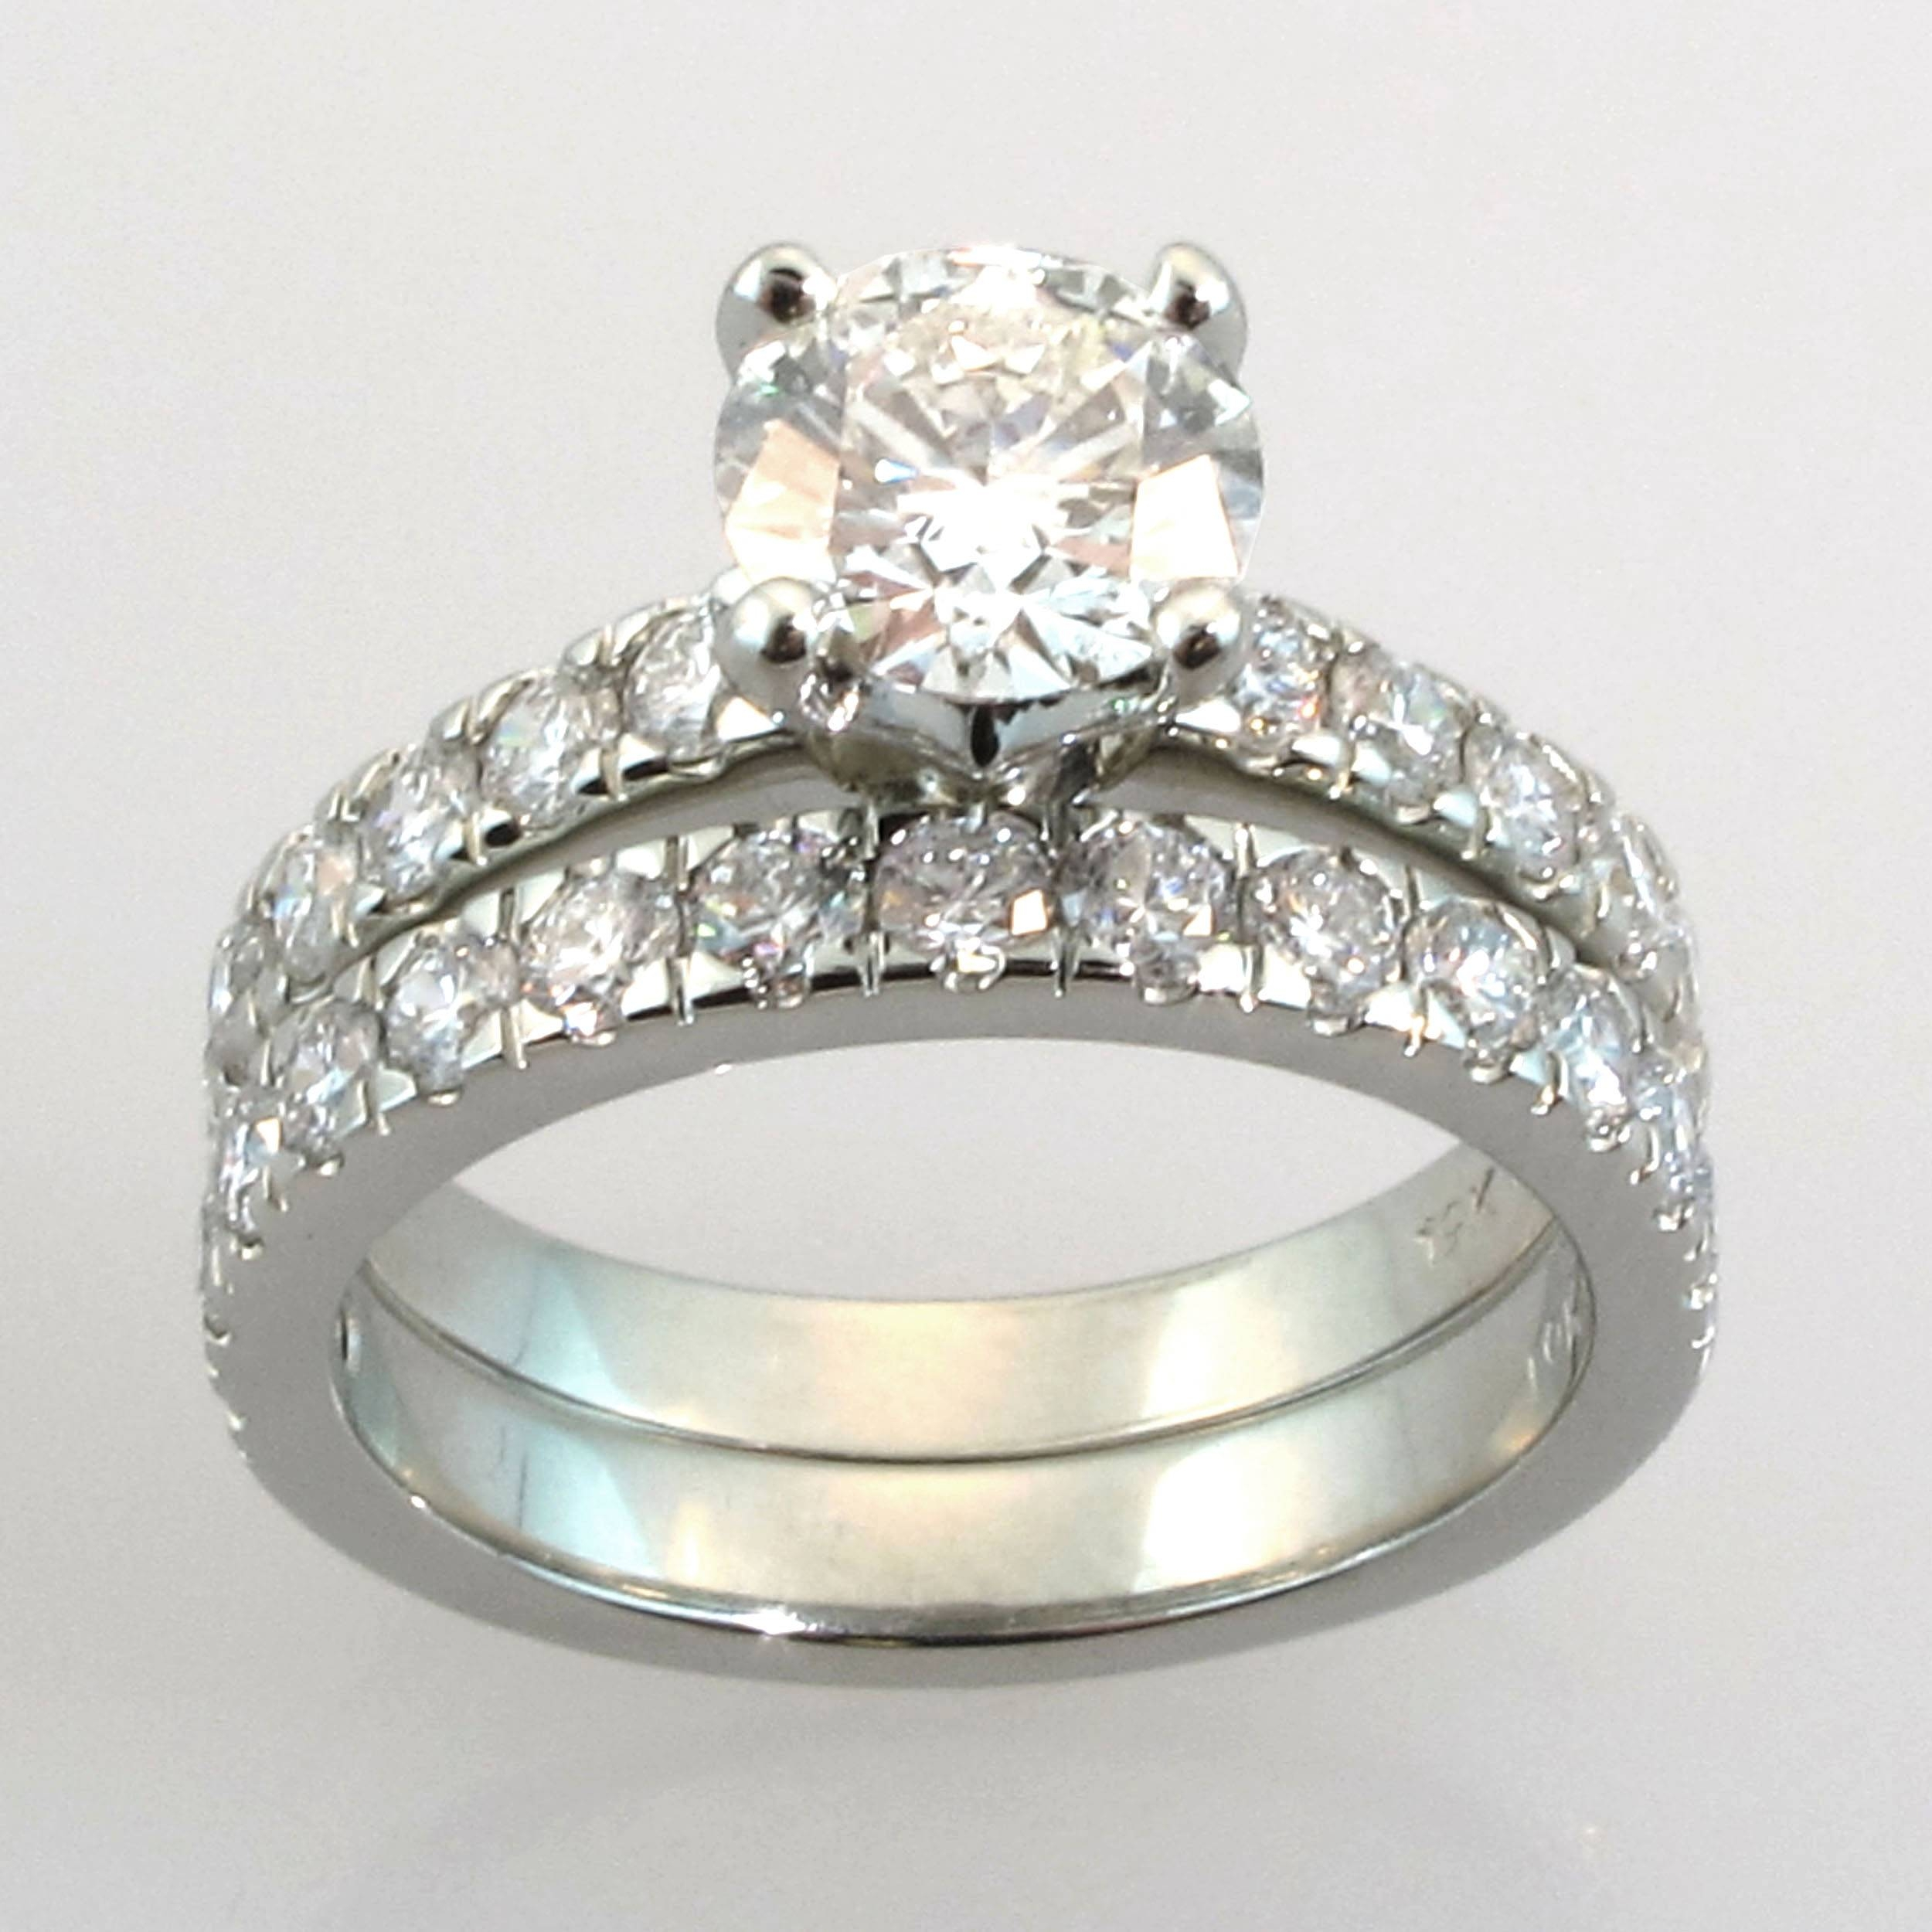 Wedding Rings : Affordable Wedding Rings Online Best Online Throughout Layaway Wedding Rings (View 15 of 15)